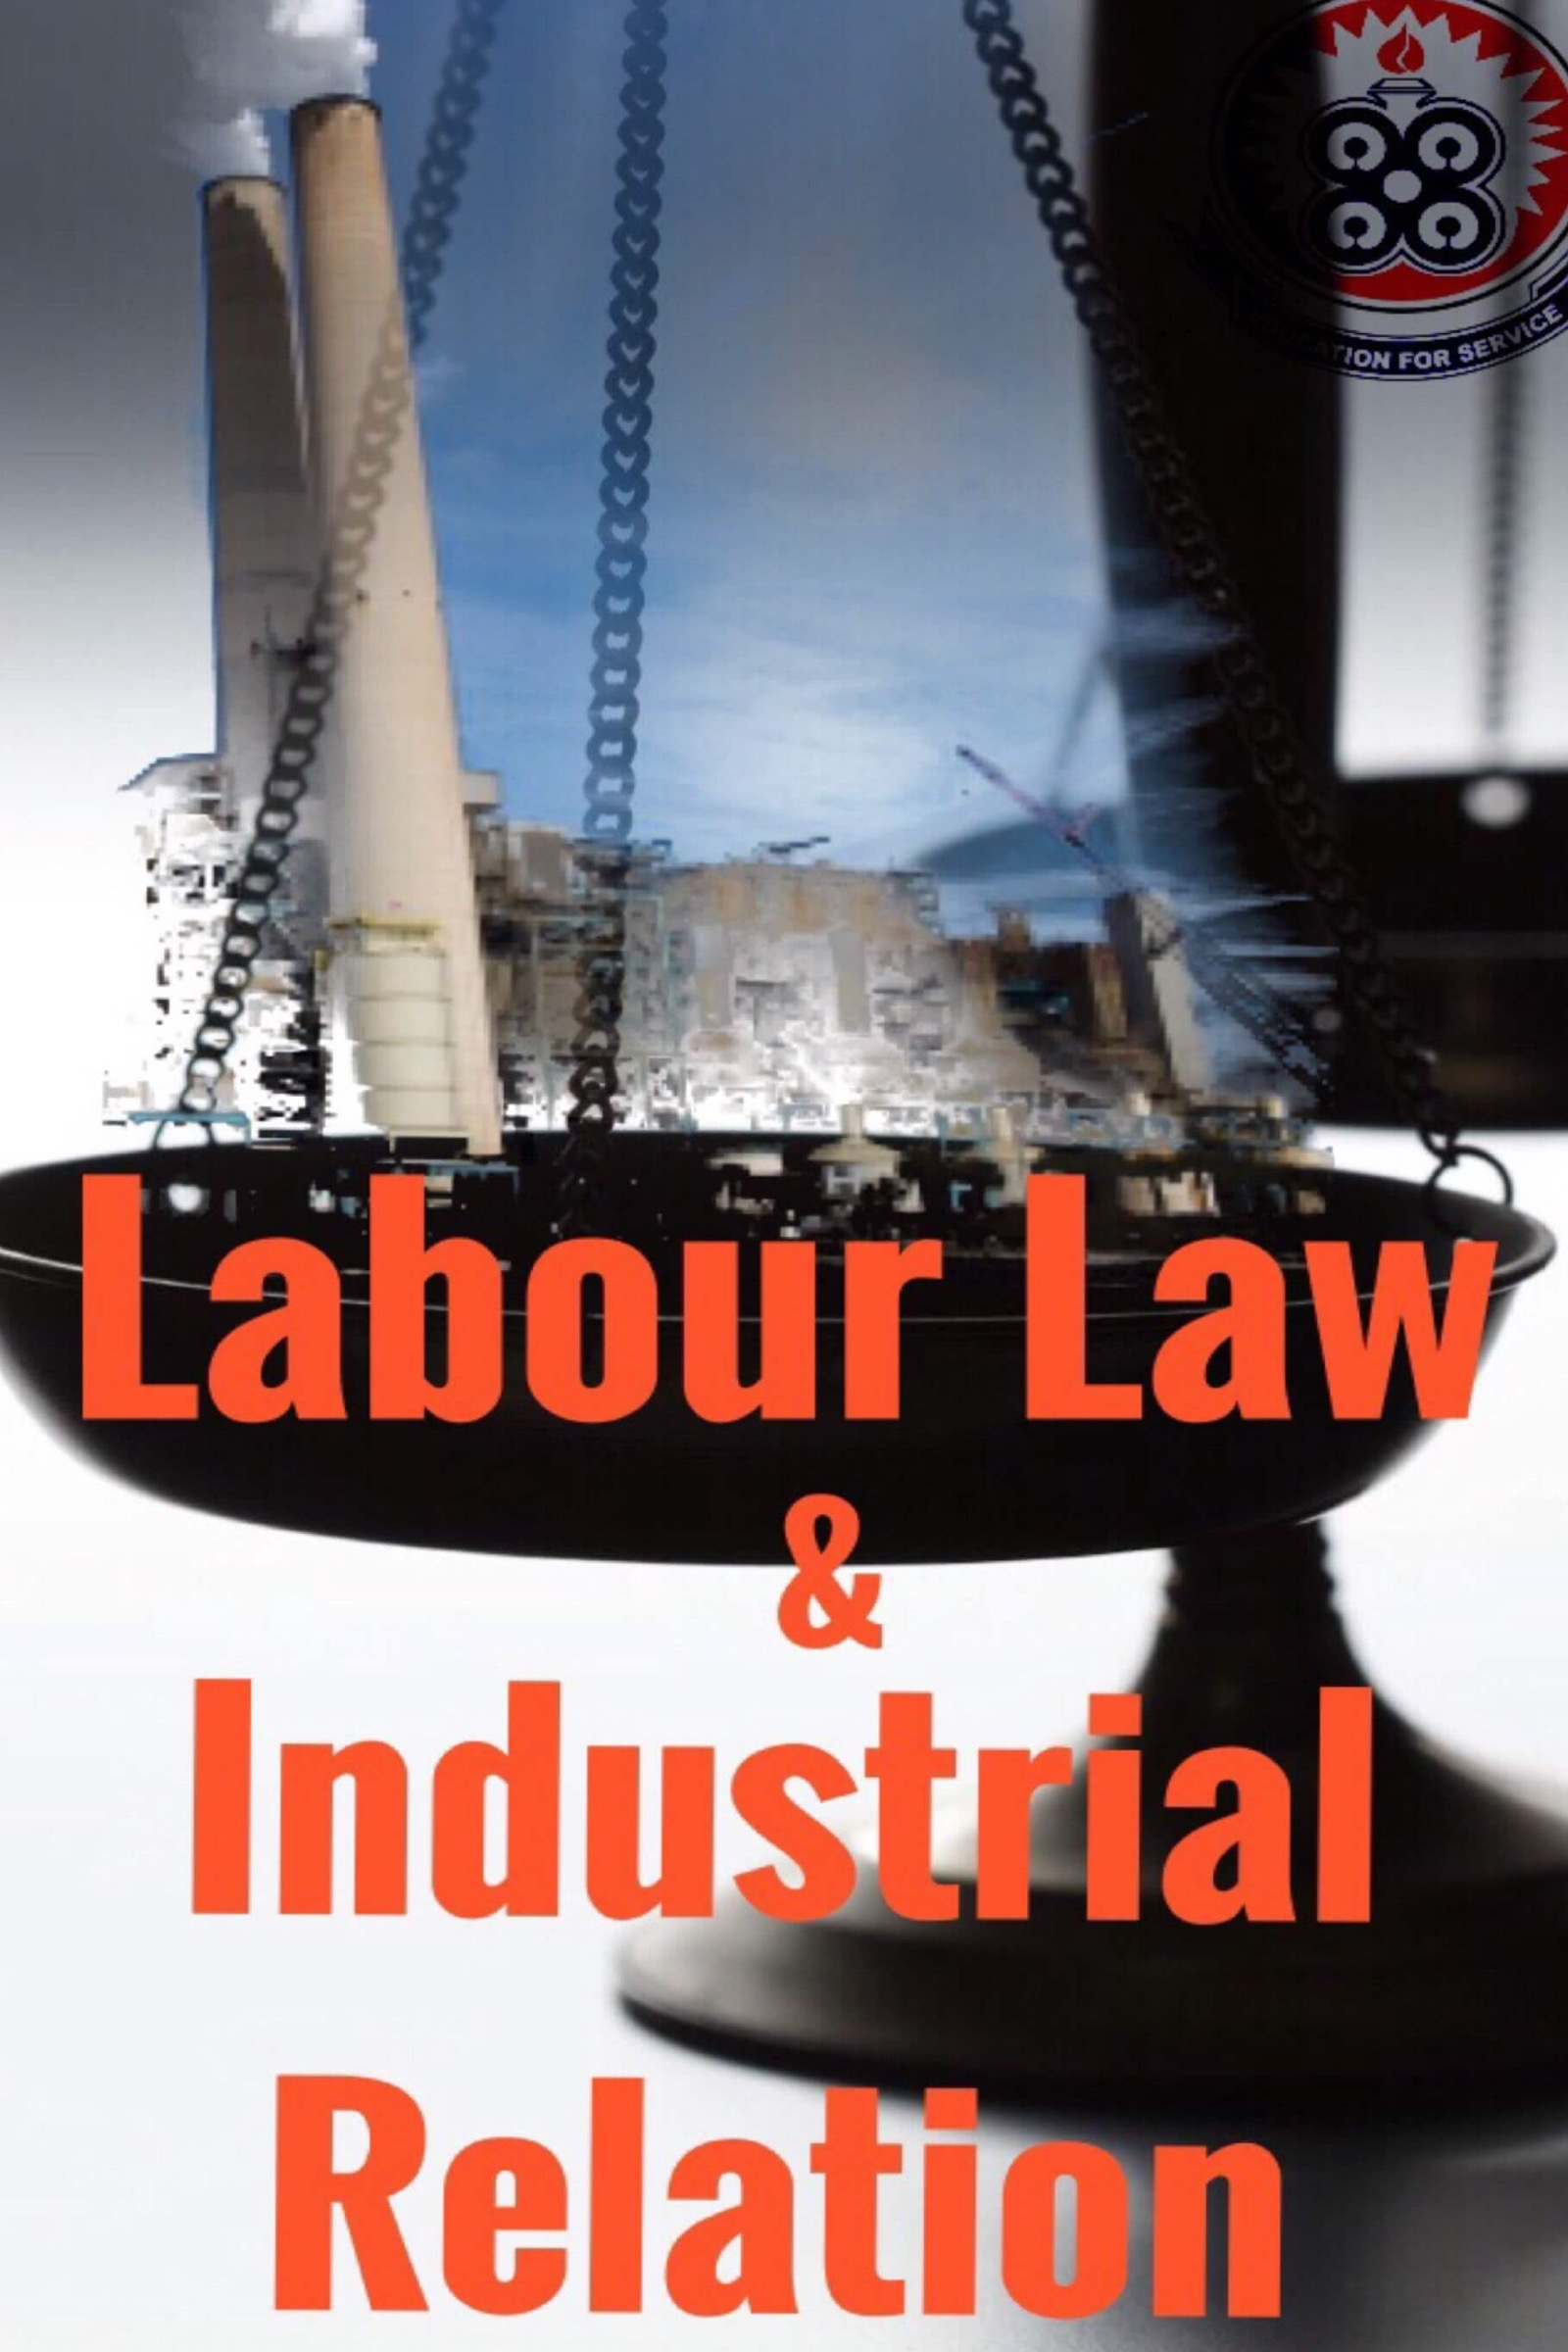 industrial relations labour laws An overview of industrial relations in kenya key words: labour laws, industrial labour relations, collective bargaining, tripartism introduction.